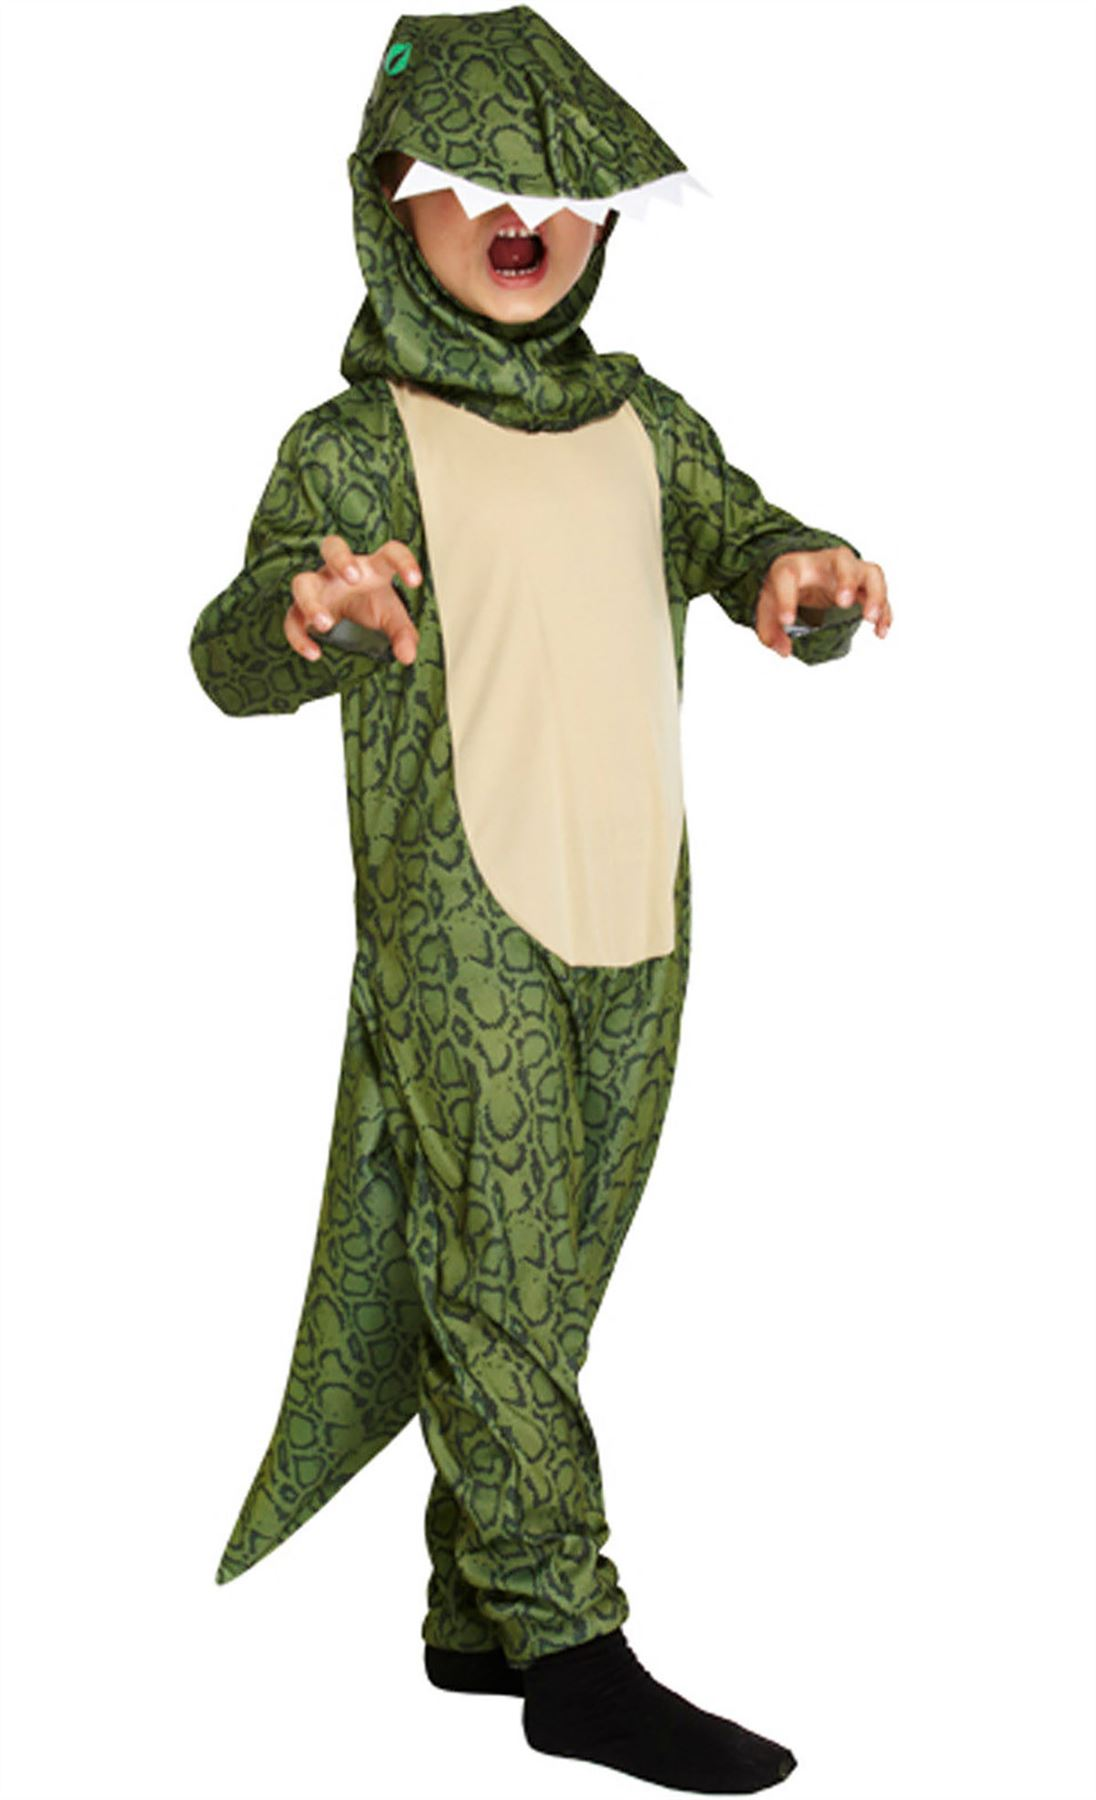 Childrens-Dinosaur-Costume-Jumpsuit-Kids-Fancy-Dress-Animal-  sc 1 st  eBay & Childrens Dinosaur Costume Jumpsuit Kids Fancy Dress Animal Theme ...